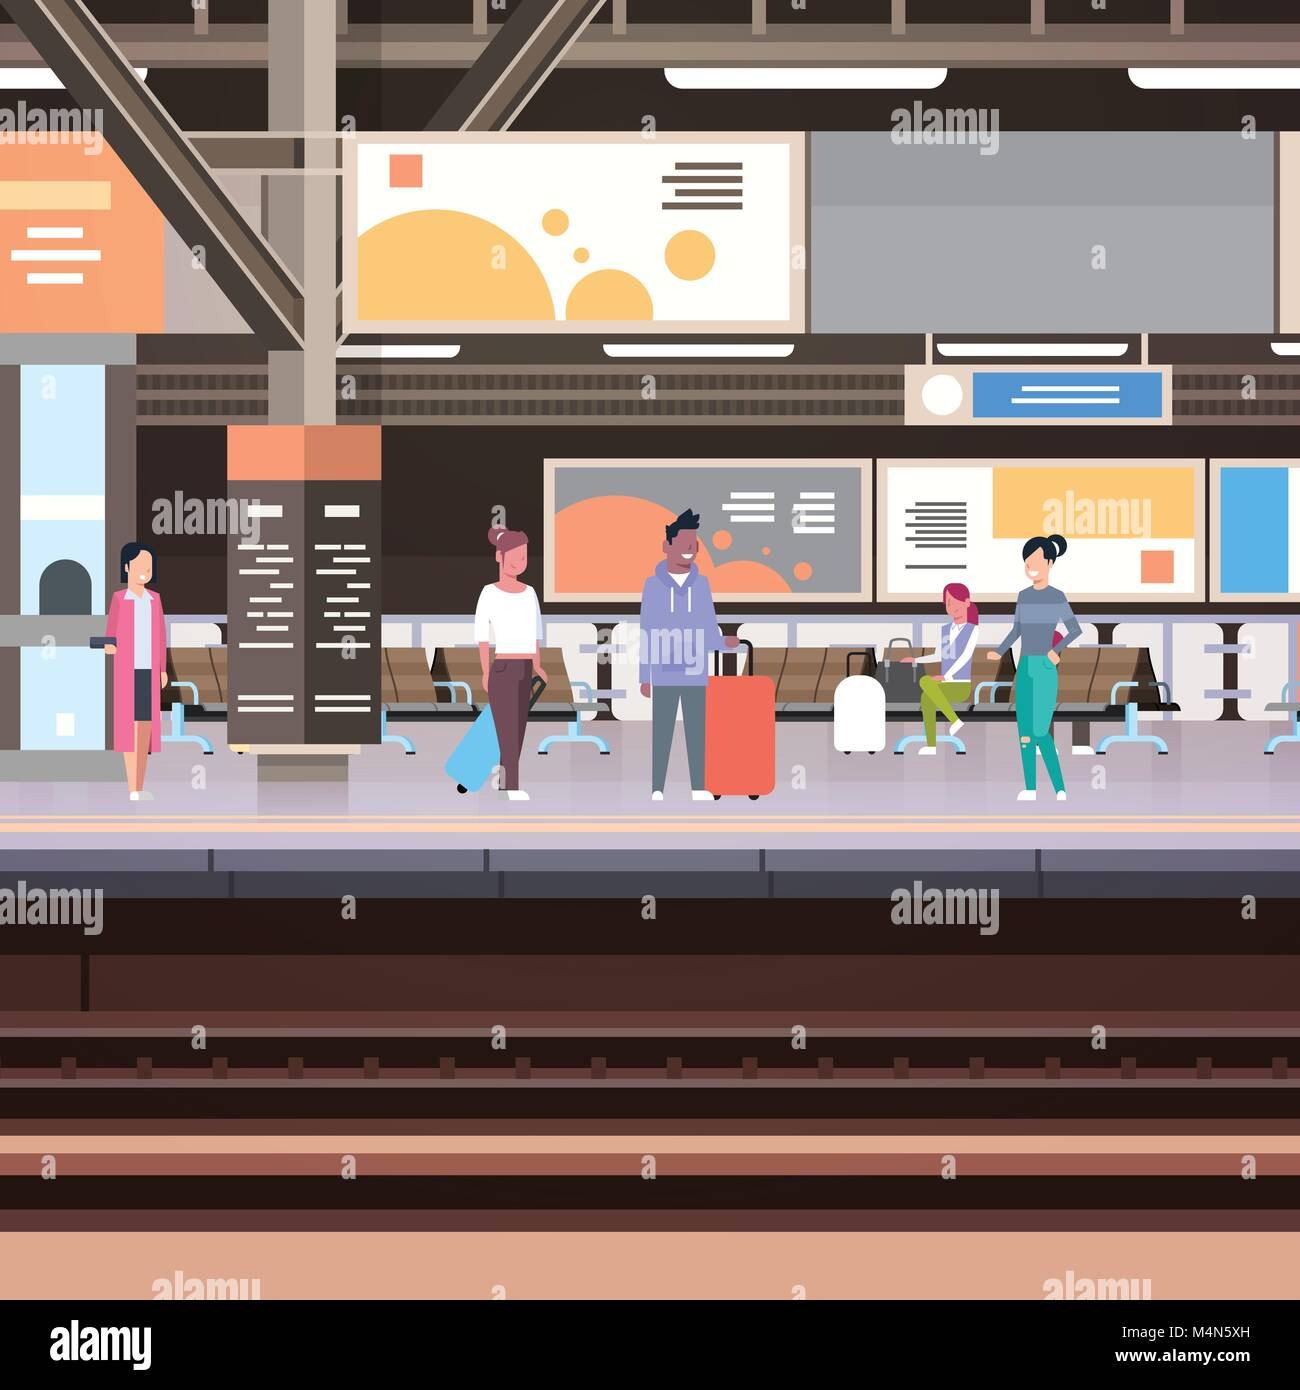 Railway Station Platform With Passengers Waiting For Train Departure Transportation Concept - Stock Vector